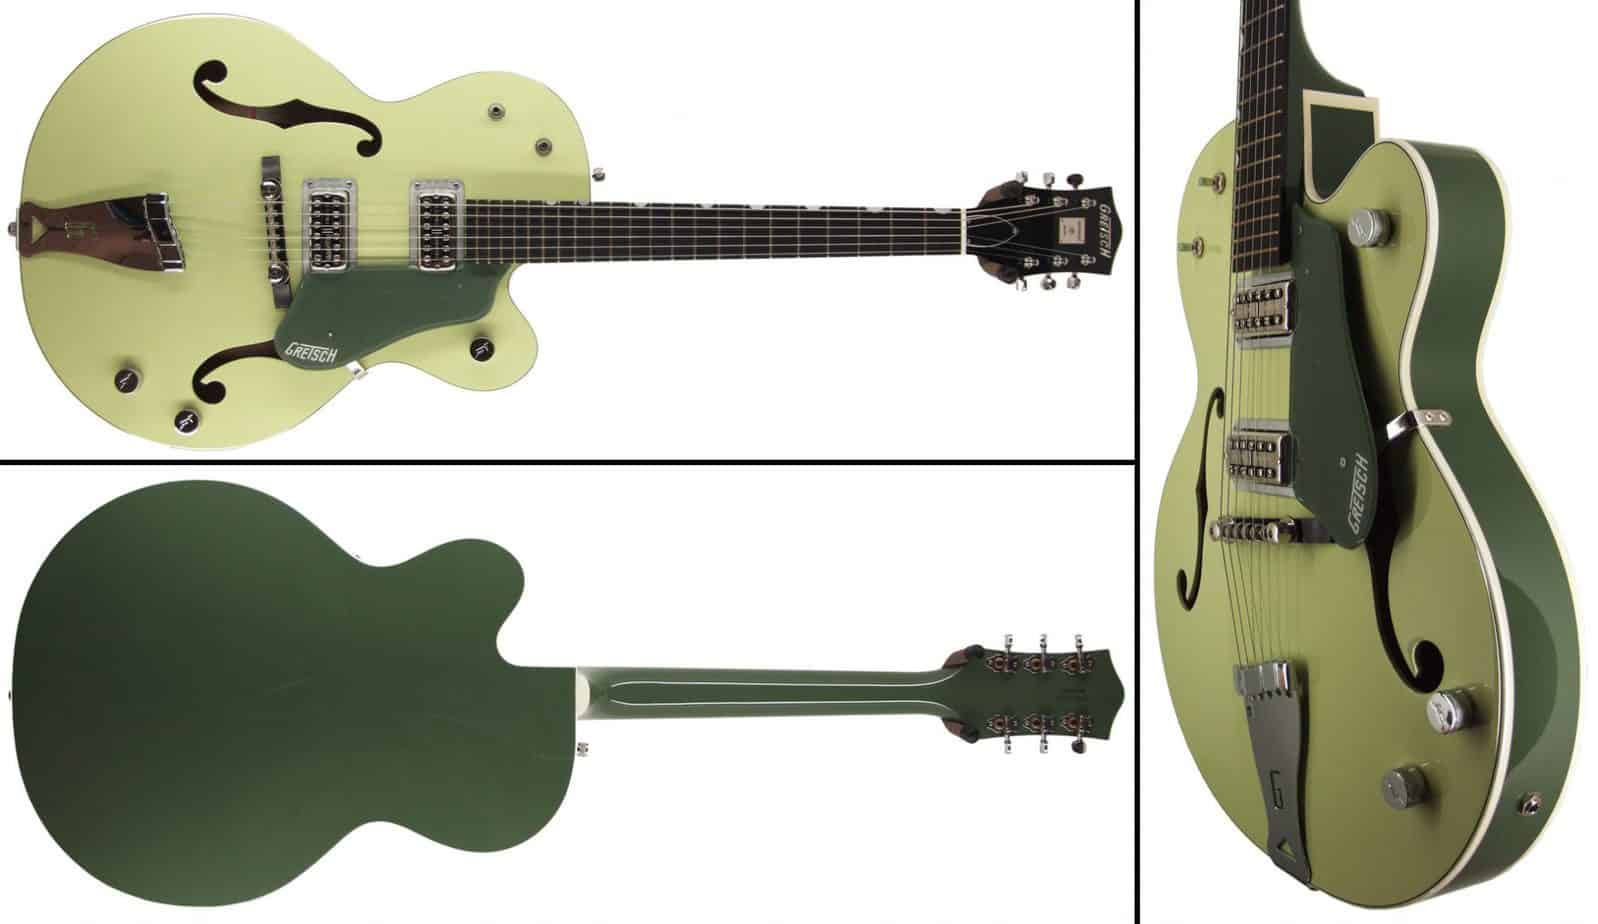 3 different view of the guitar